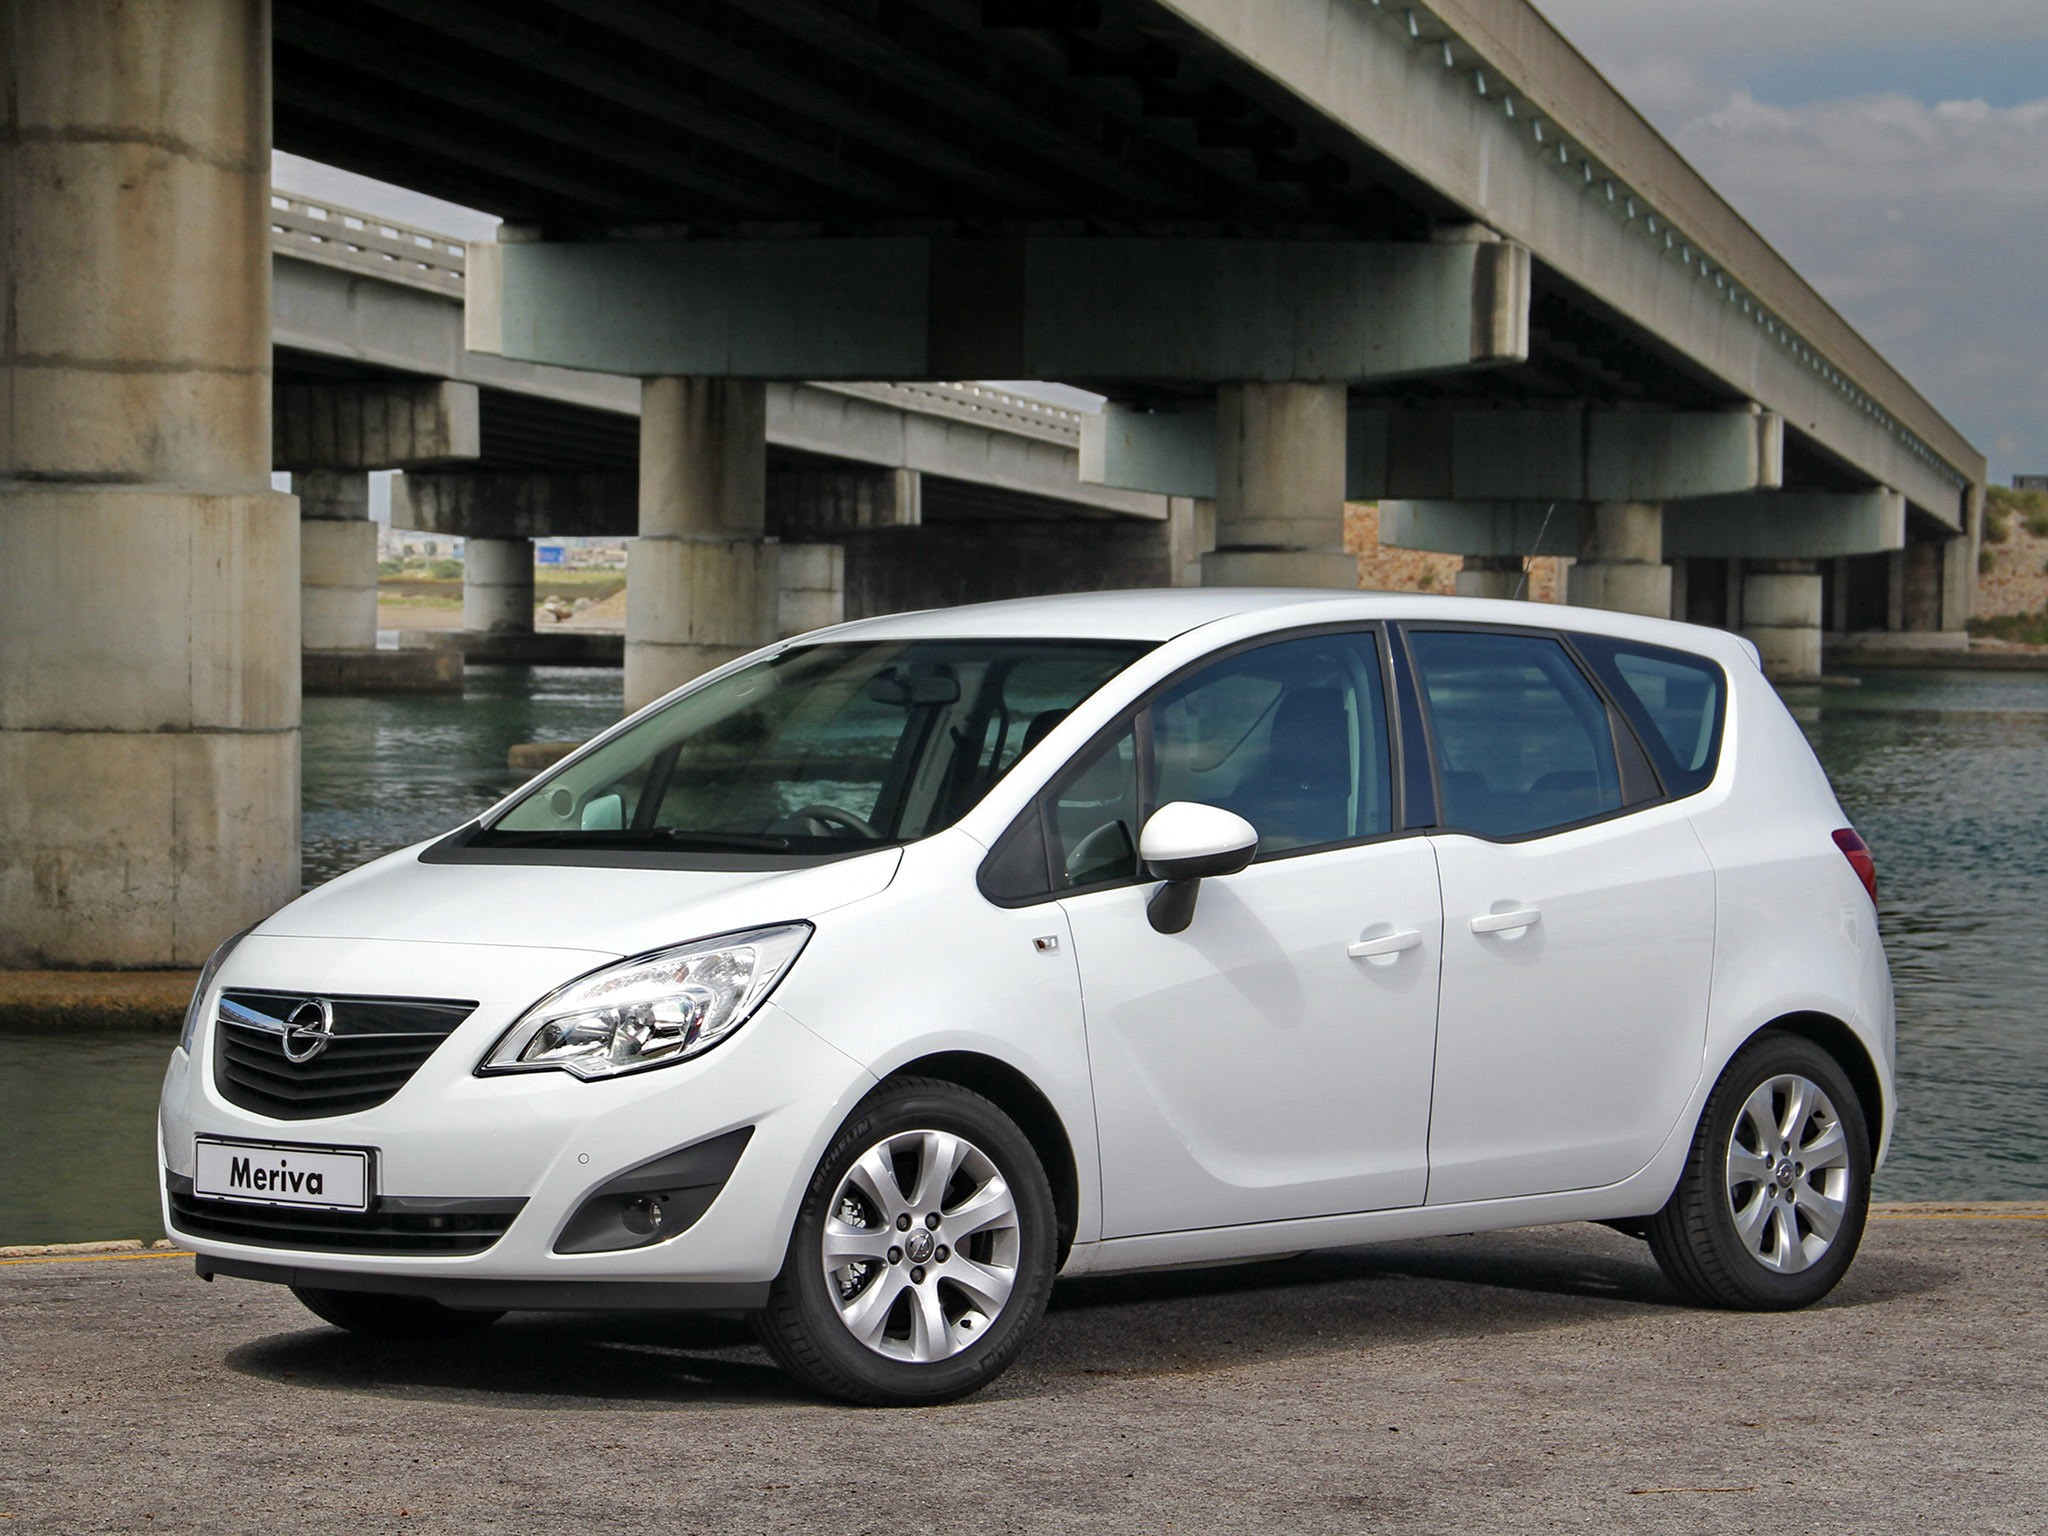 Opel Meriva Turbo 2012